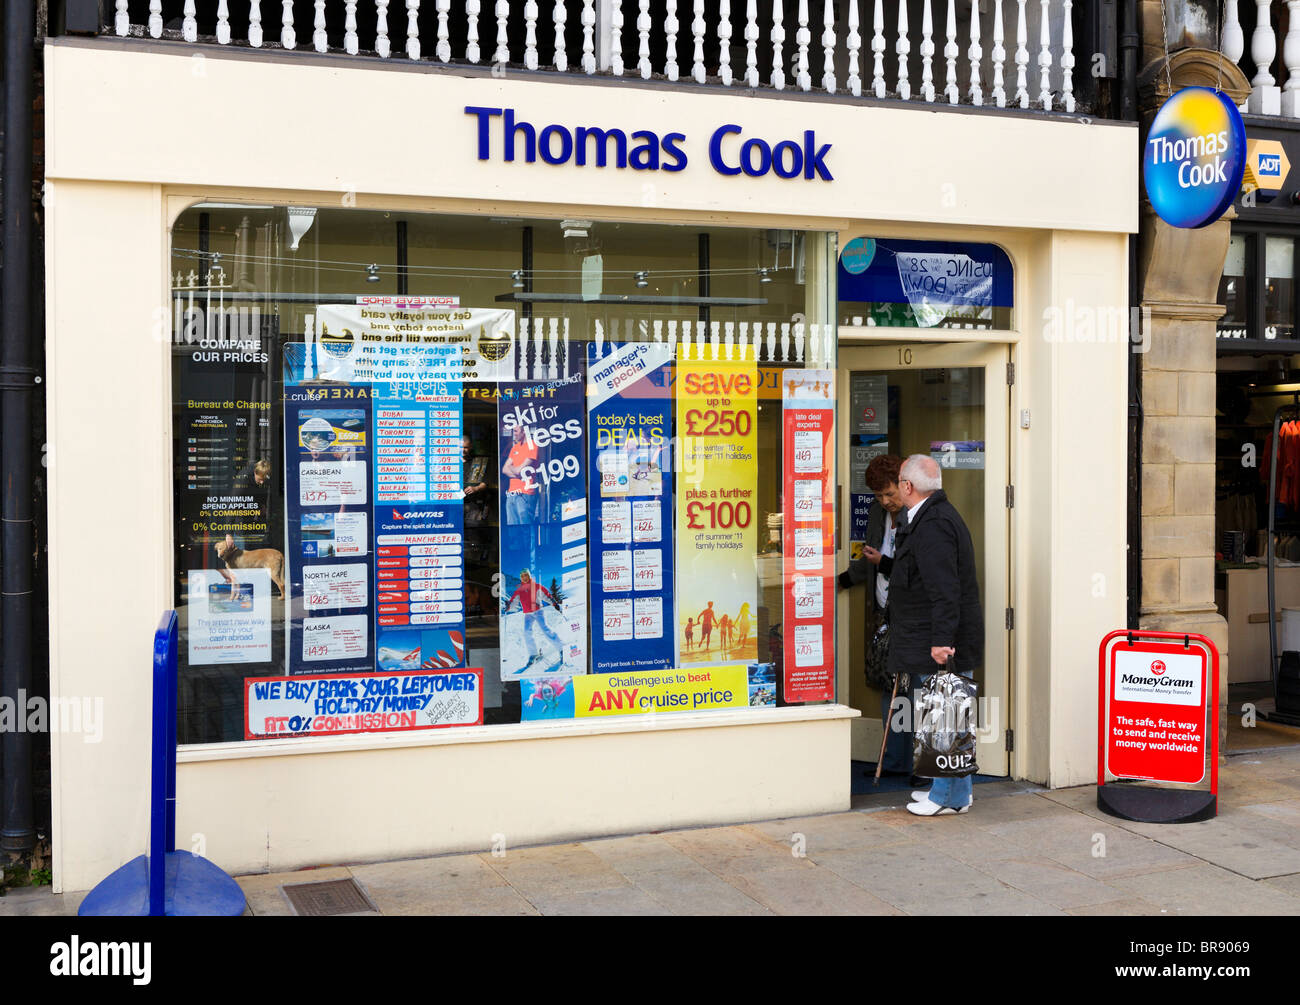 Thomas Cook high street travel agency in Chester town centre, Cheshire, England, UK - Stock Image